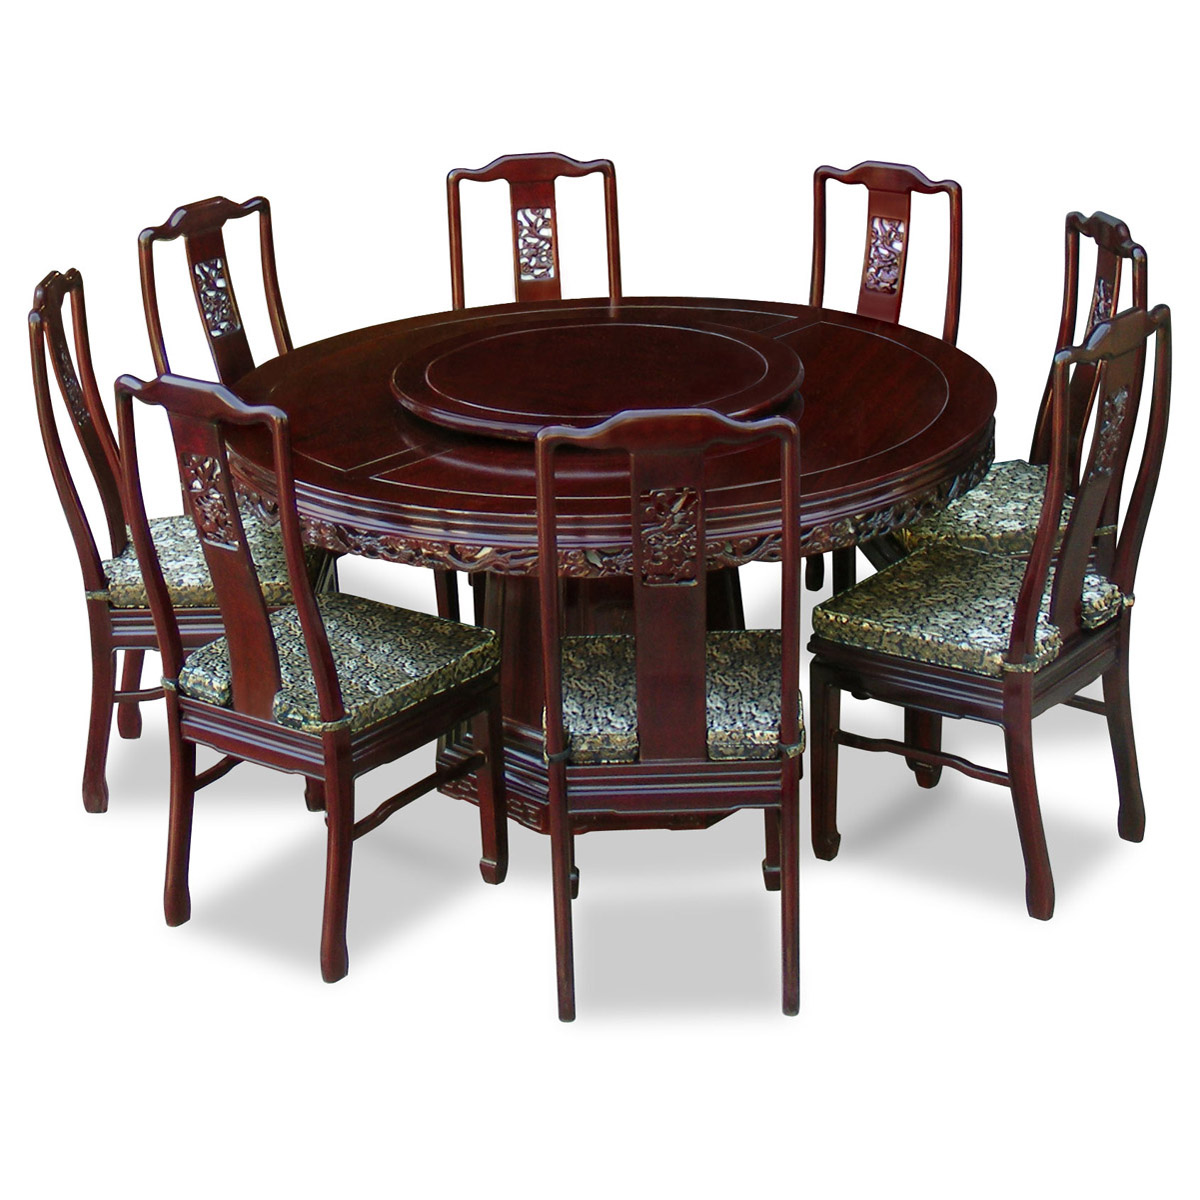 perfect 8 person round dining table homesfeed. Black Bedroom Furniture Sets. Home Design Ideas